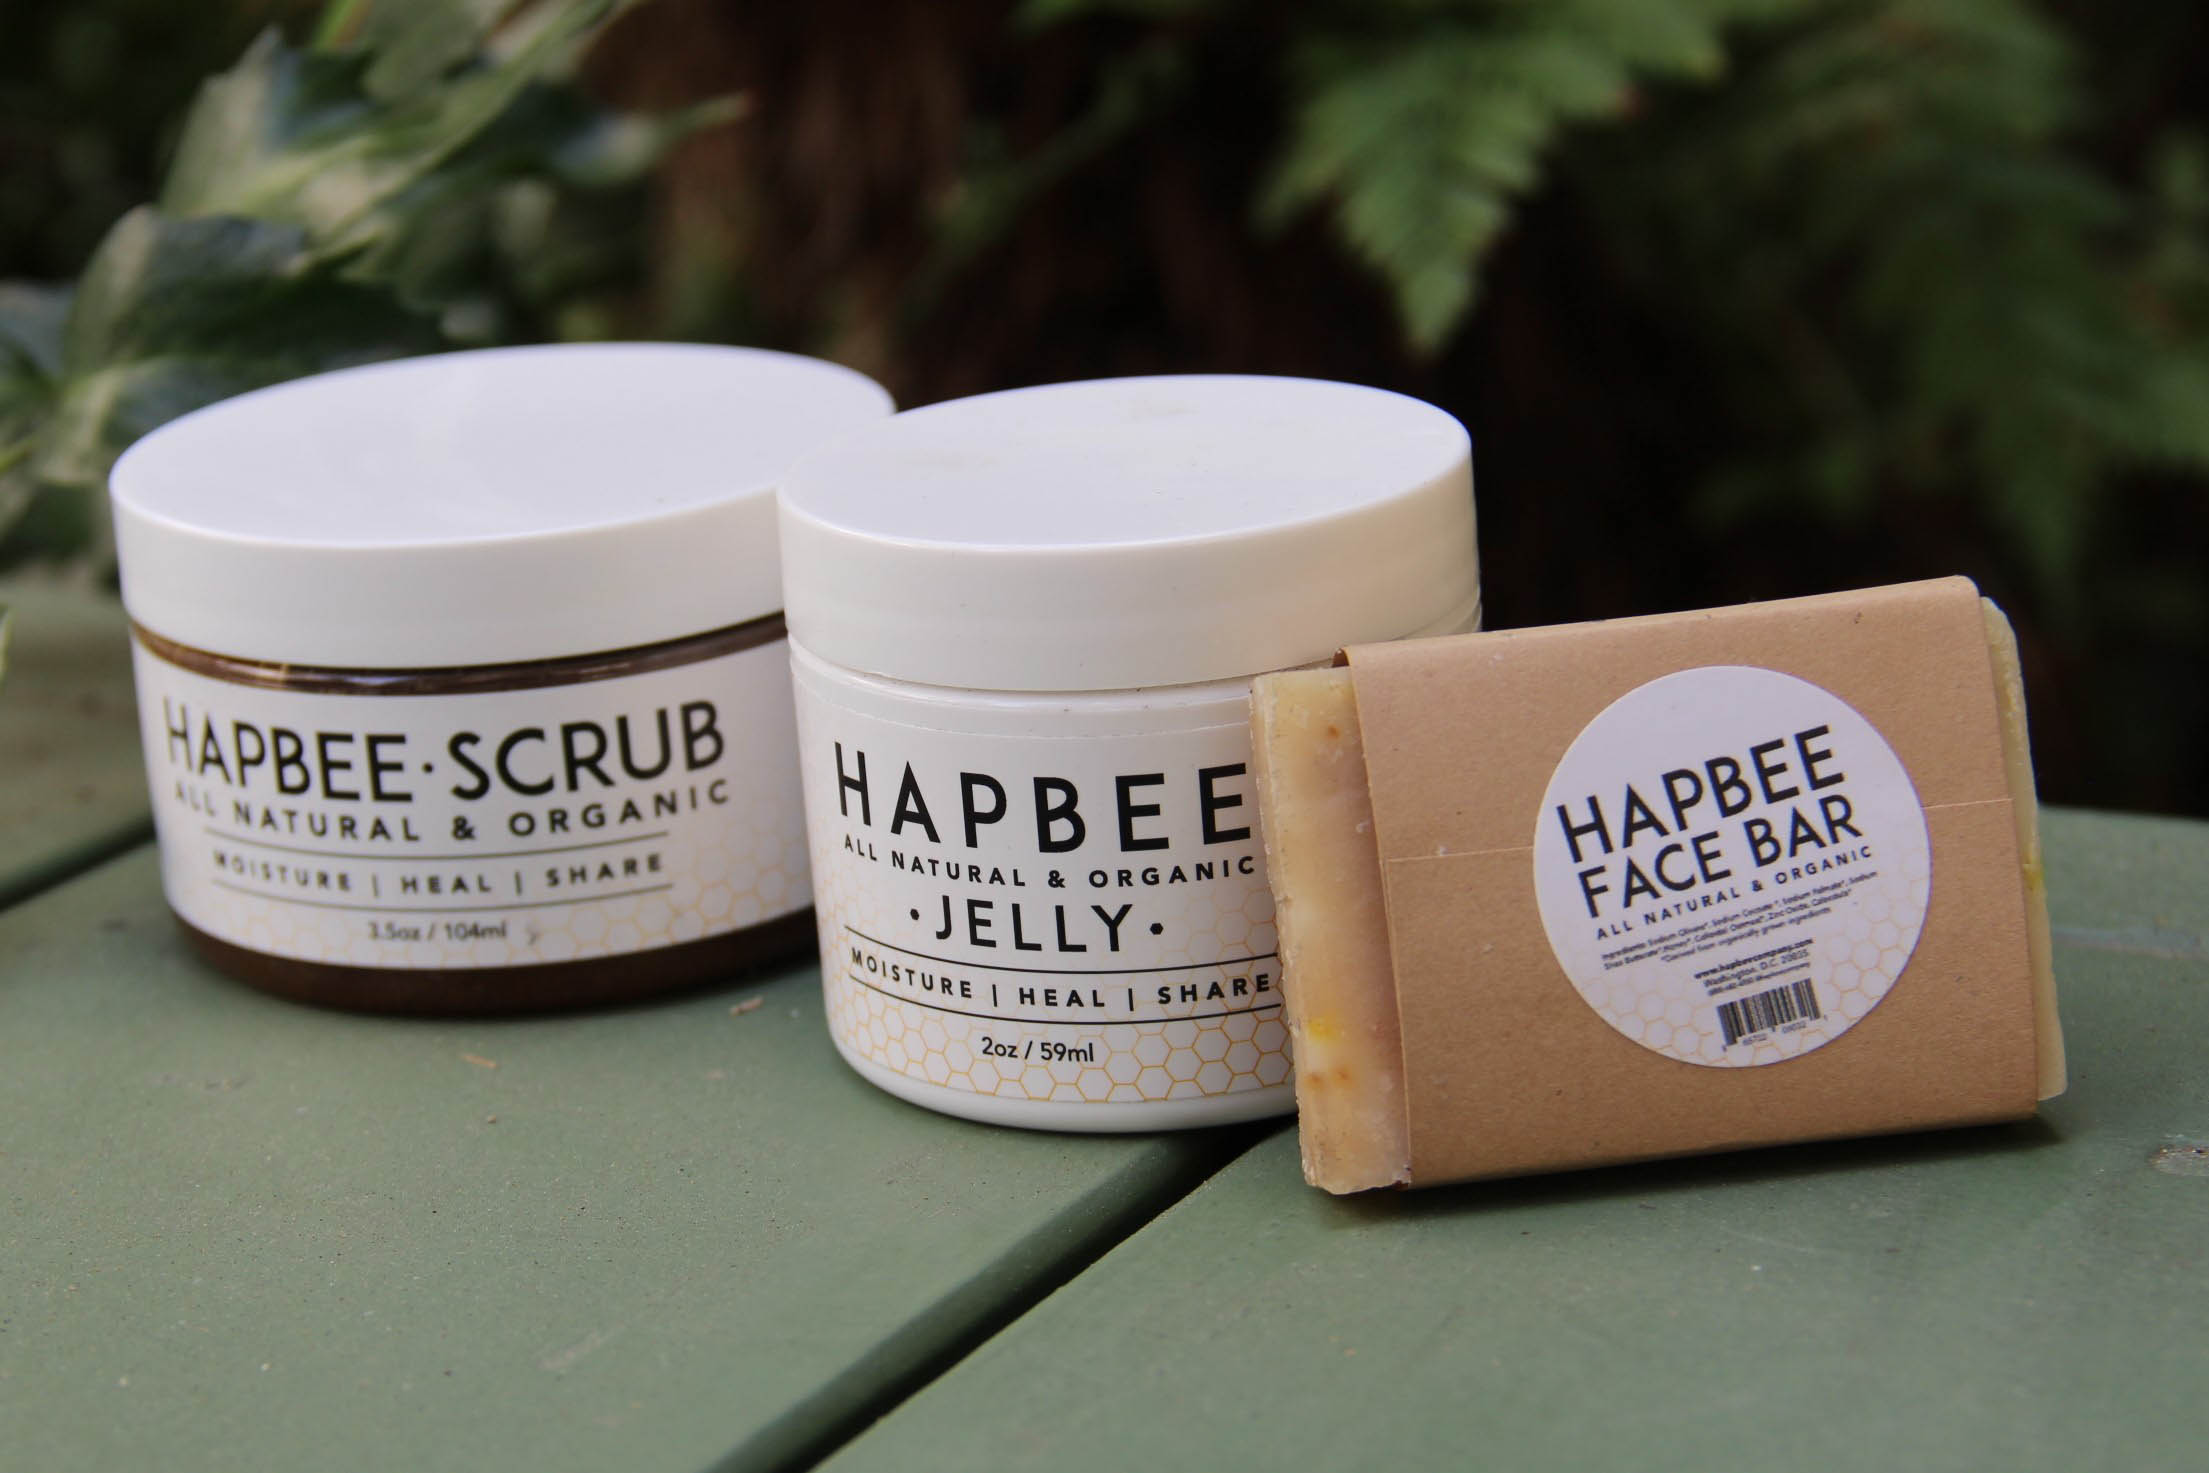 Hapbee skincare products